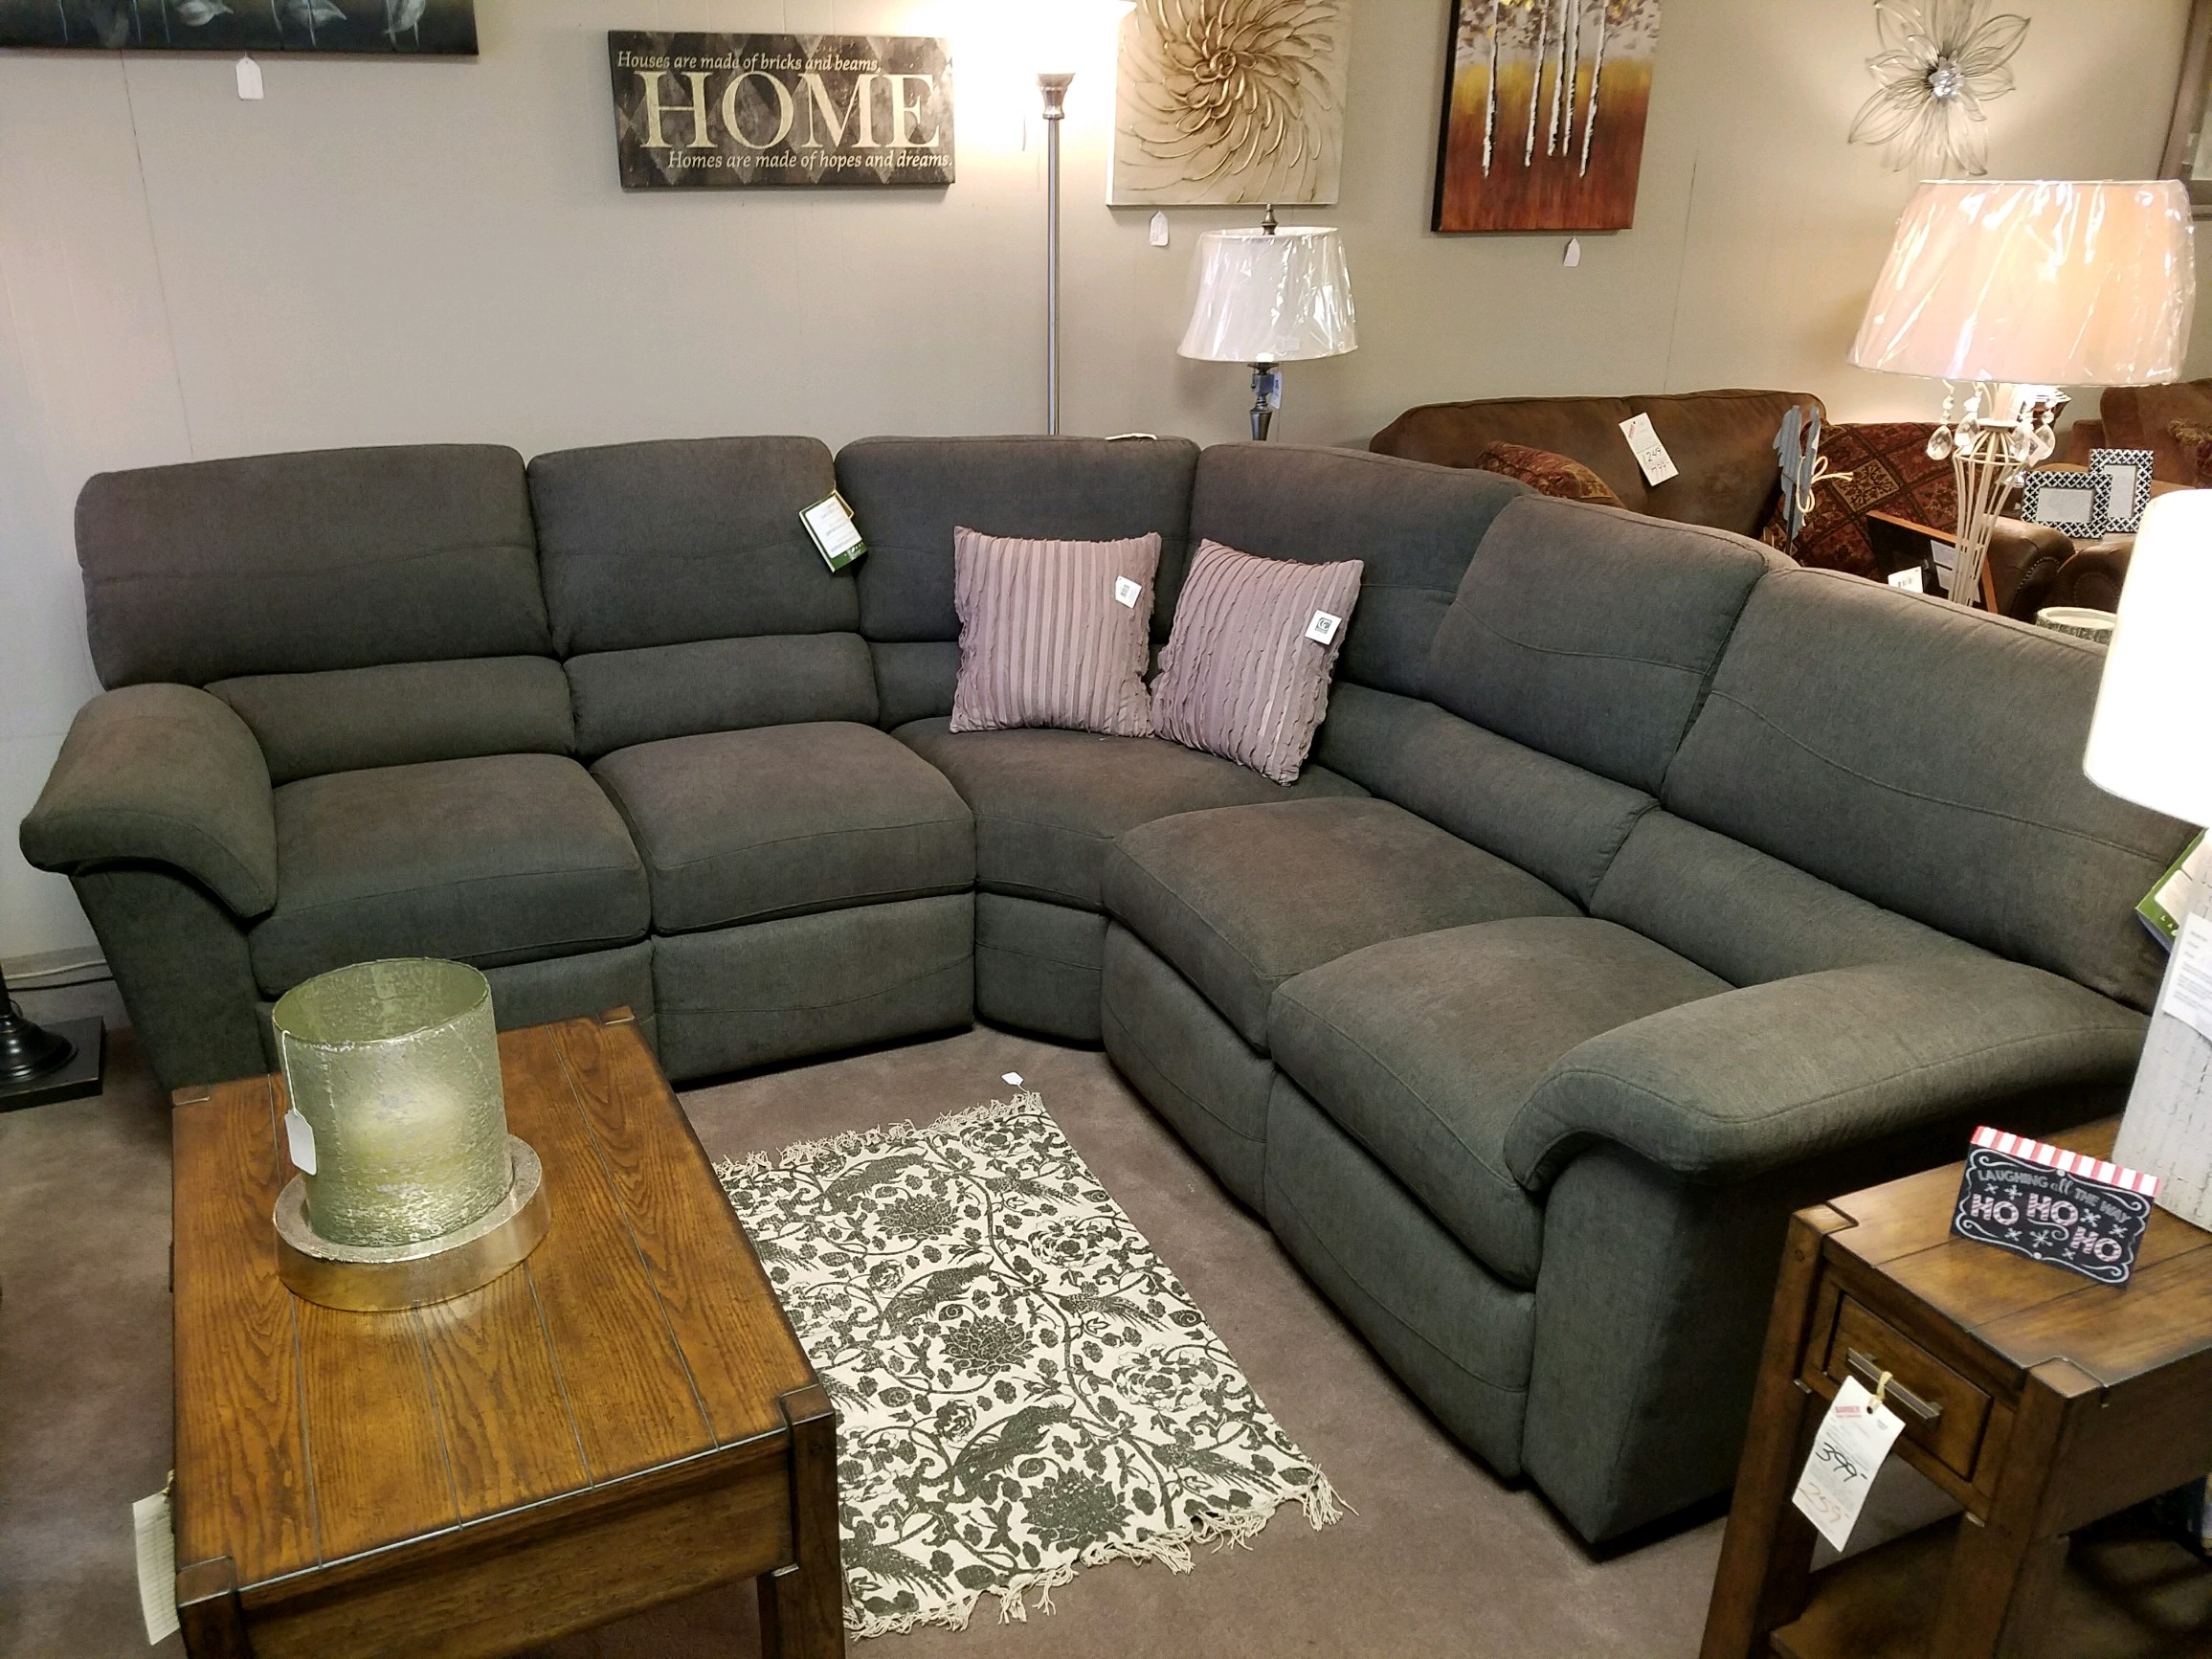 366 La Z Boy Reese Sectional